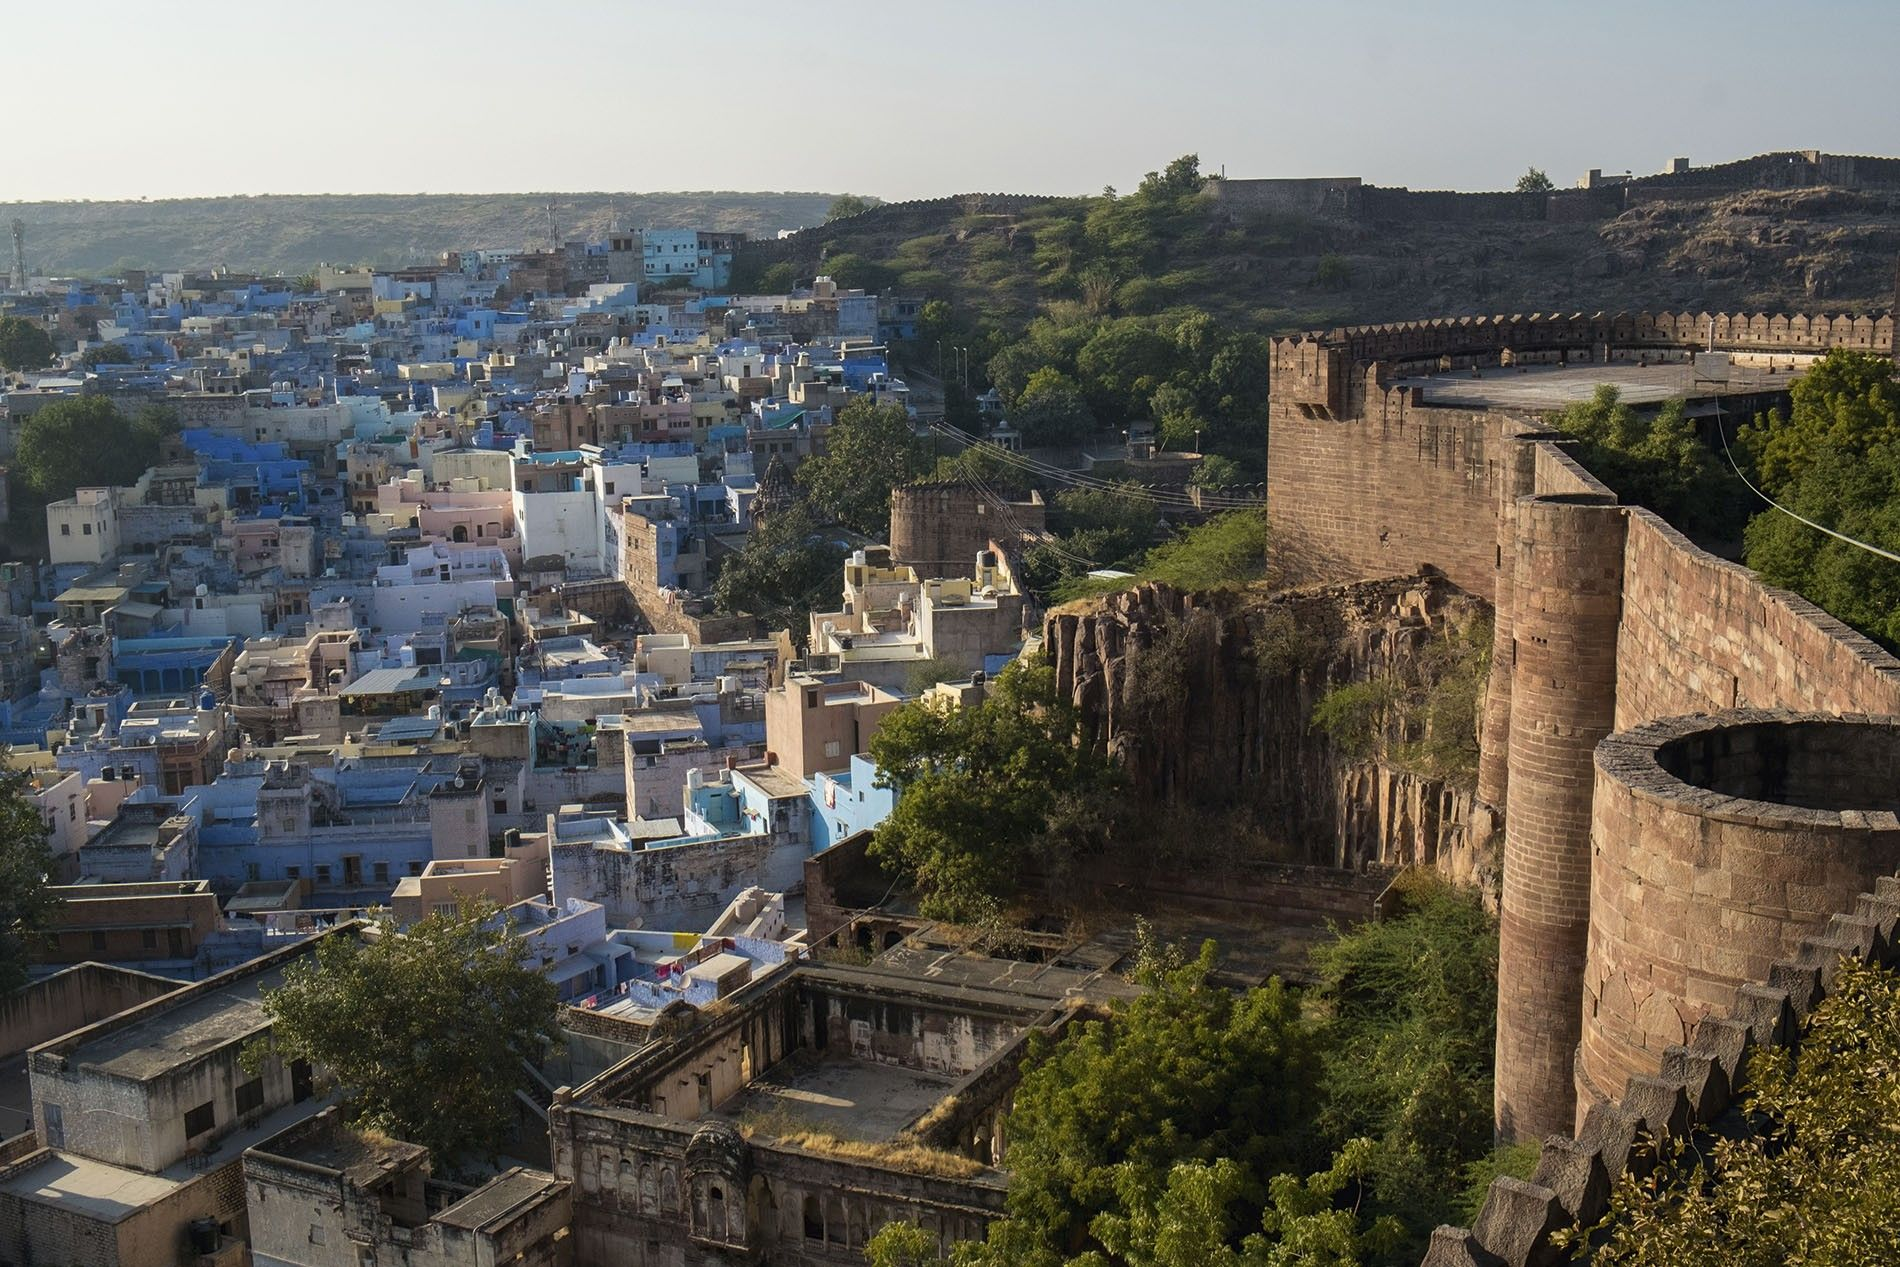 View from the top of Mehrangarh Fort.